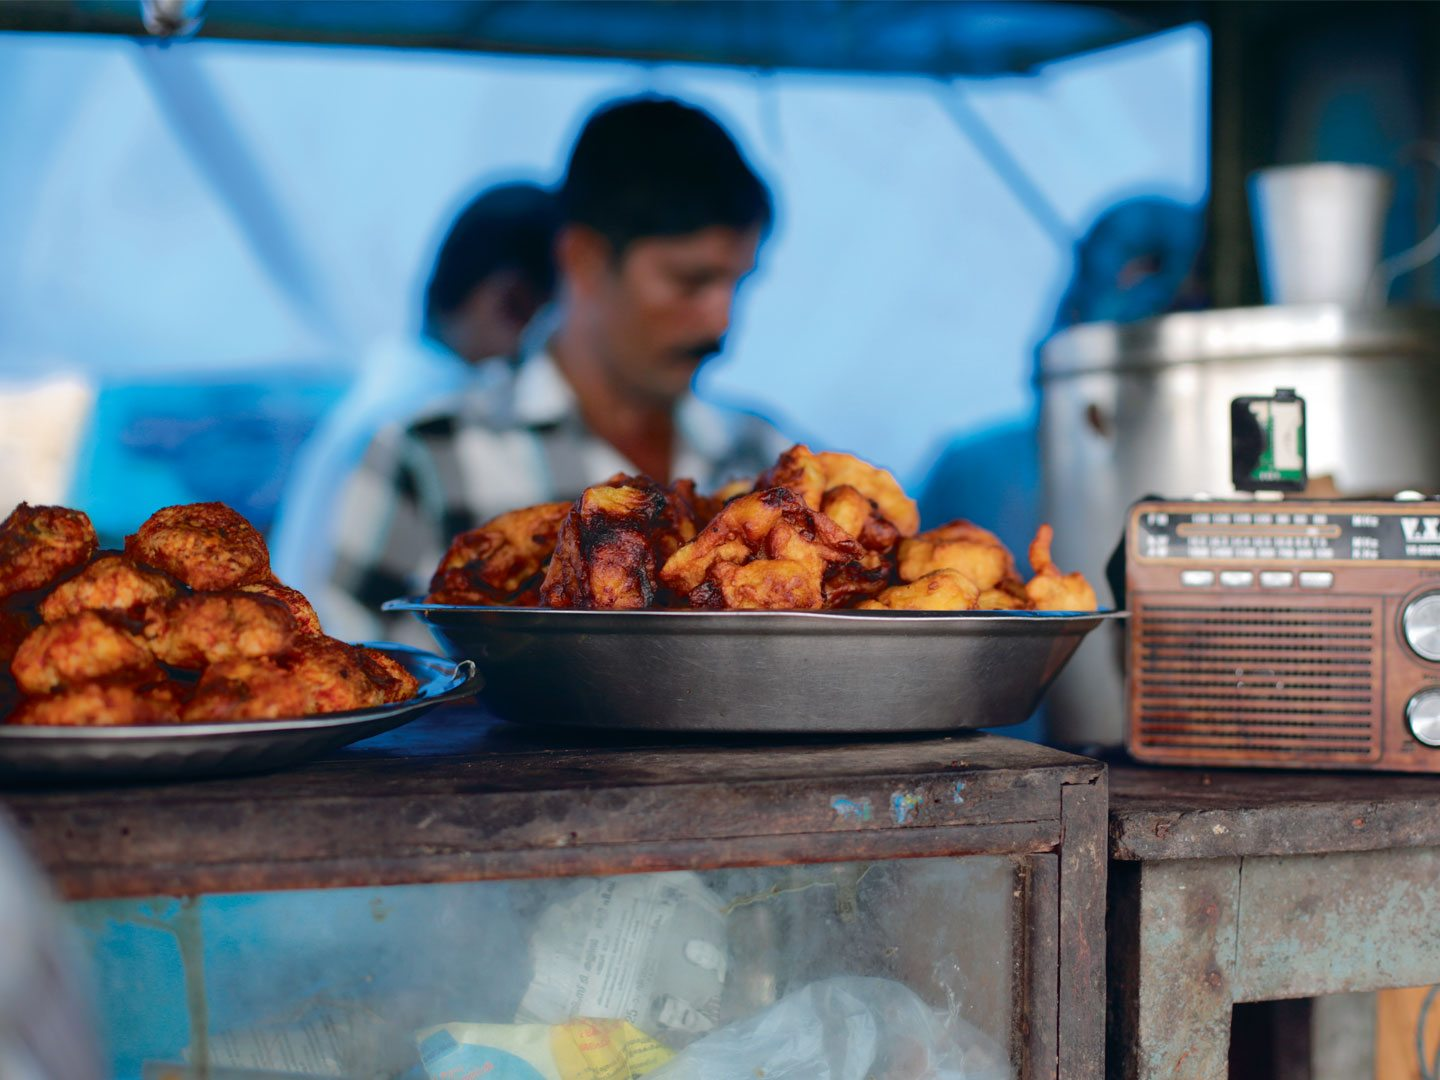 Thalassery's roadside stalls serve yummy snacks such as ari-kadukka (stuffed mussels) or spicy fried slices of tapioca. Photo: Aysha Tanya